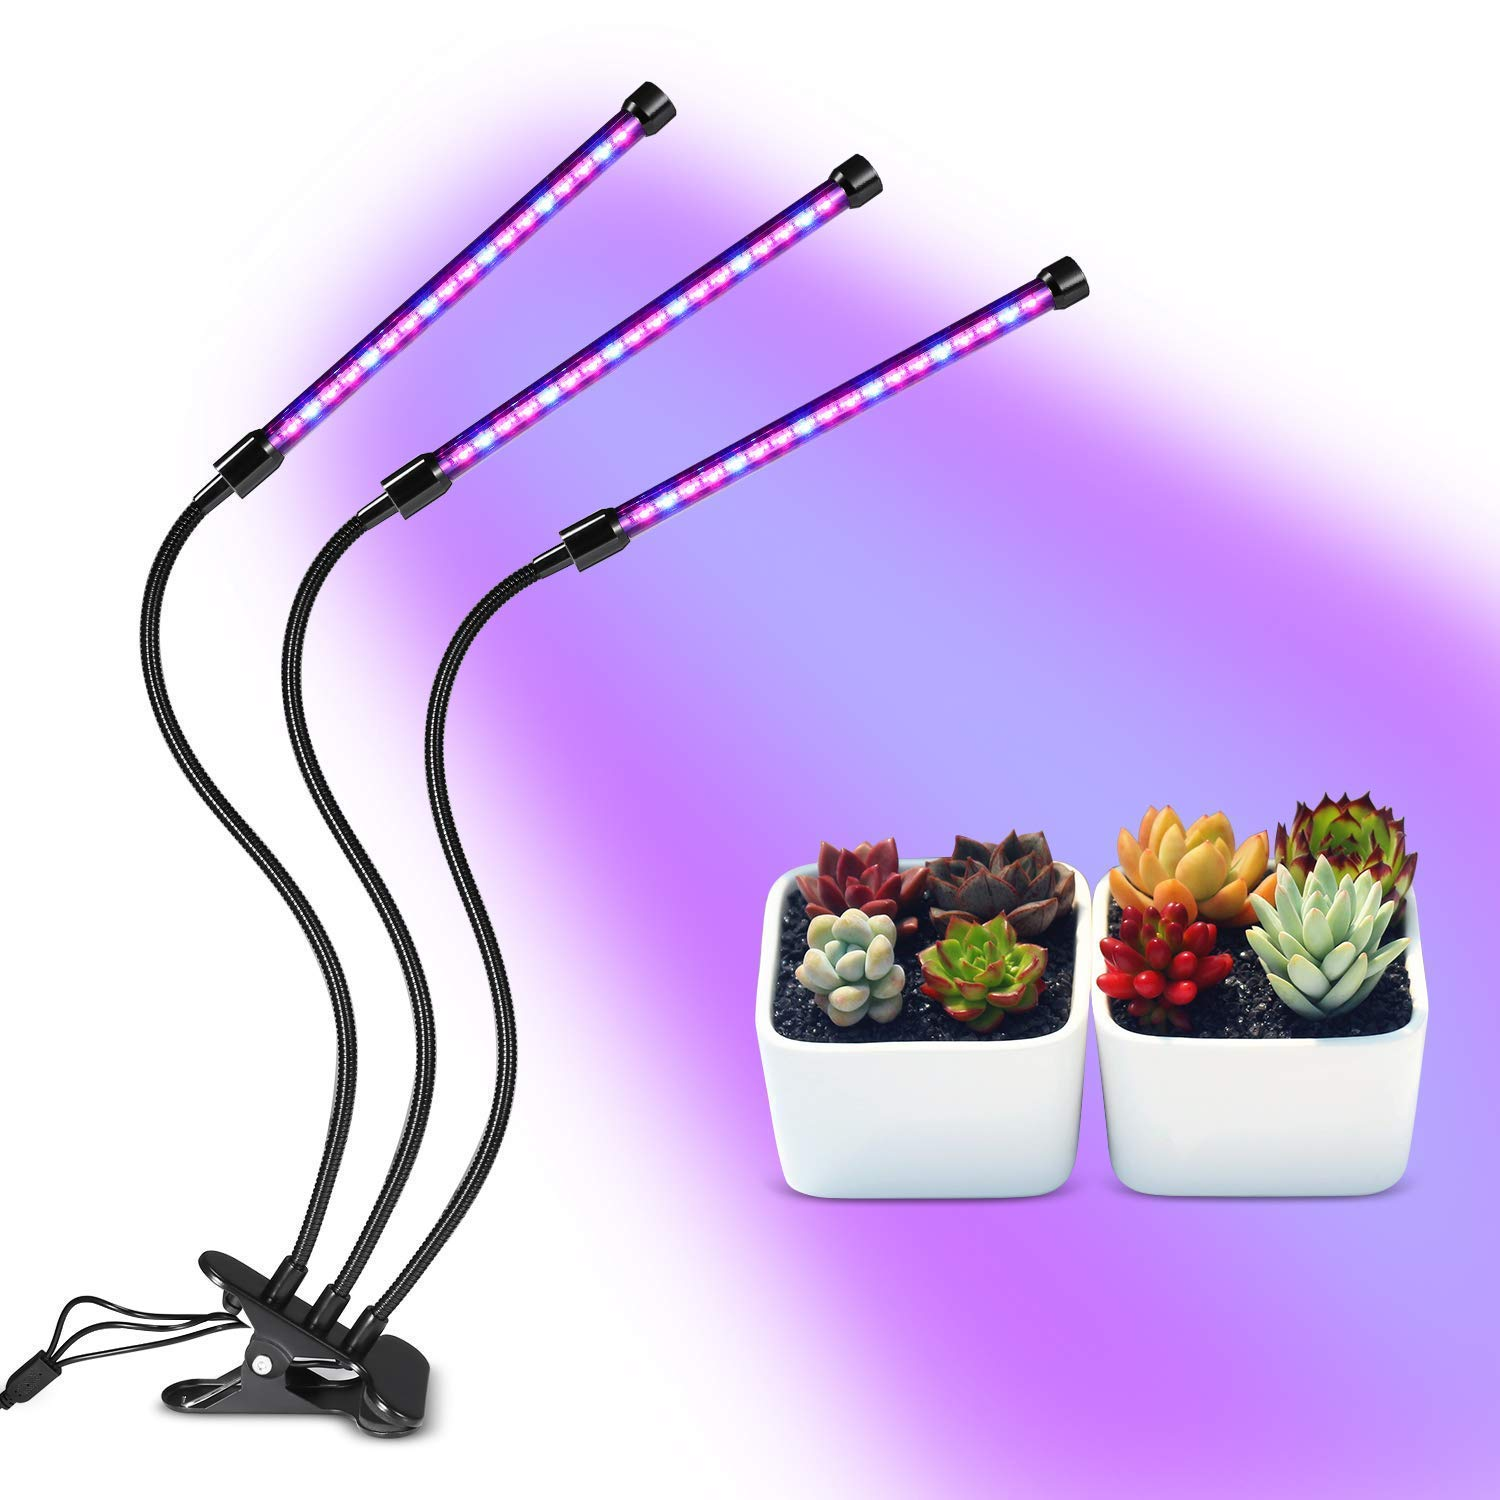 Plant Grow Light, Homeasy 27W LED Plant Grow Lamp with Auto Turn On for Indoor Plants in Winter High Power Natural Light Bulbs with Red, Blue Spectrum, 3 6 12H Timing for Indoor Gardening, Greenhouse